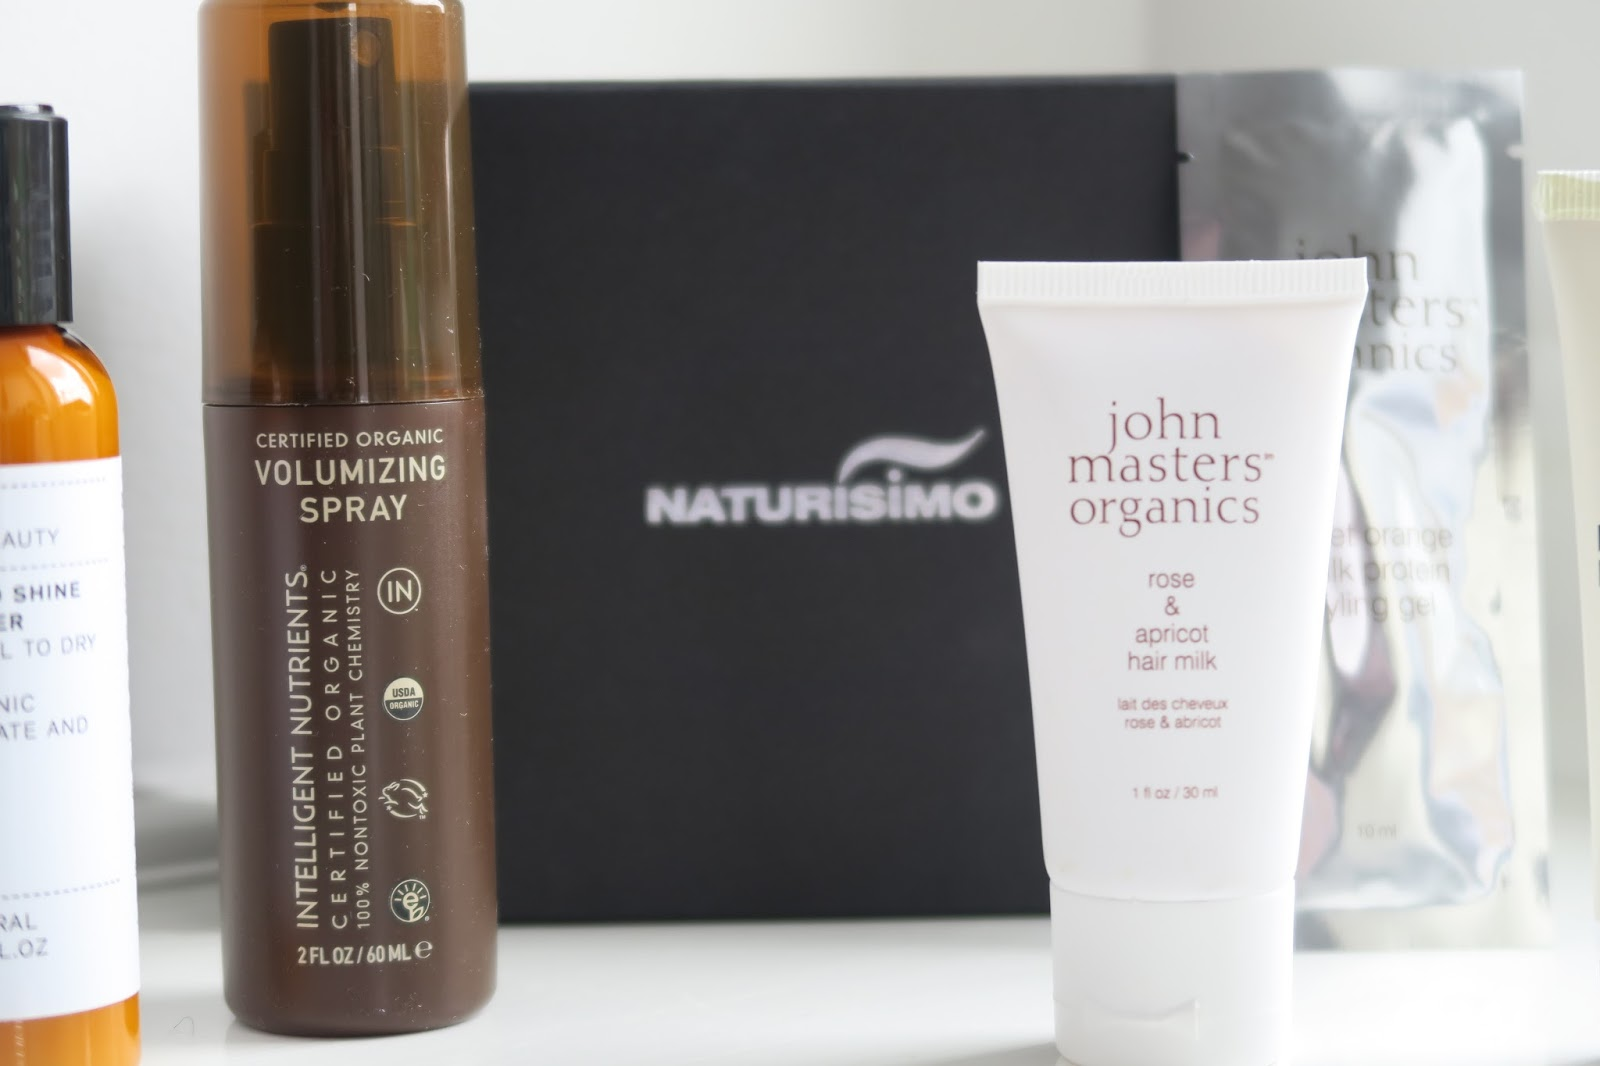 Naturisimo Gorgeous Hair Discovery Box is full of natural and organic hair products.